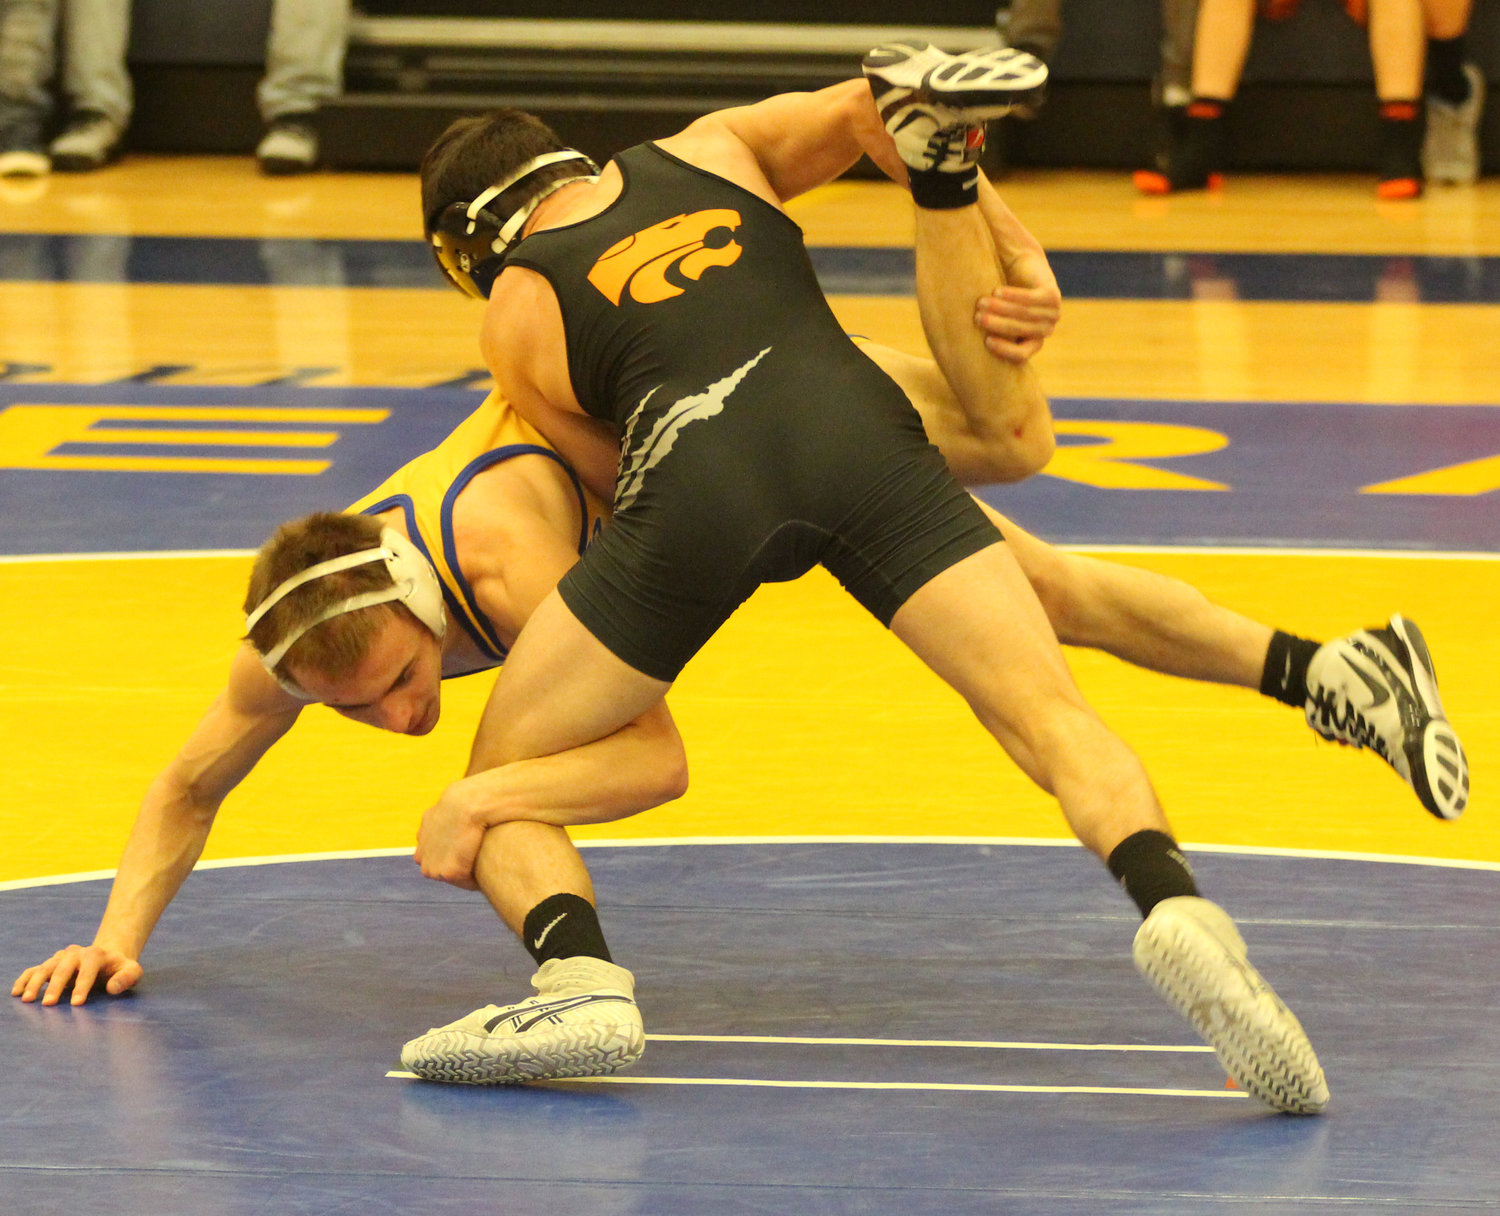 Against Palmyra on Jan. 17, Middletown's Nate Brady was victorious.